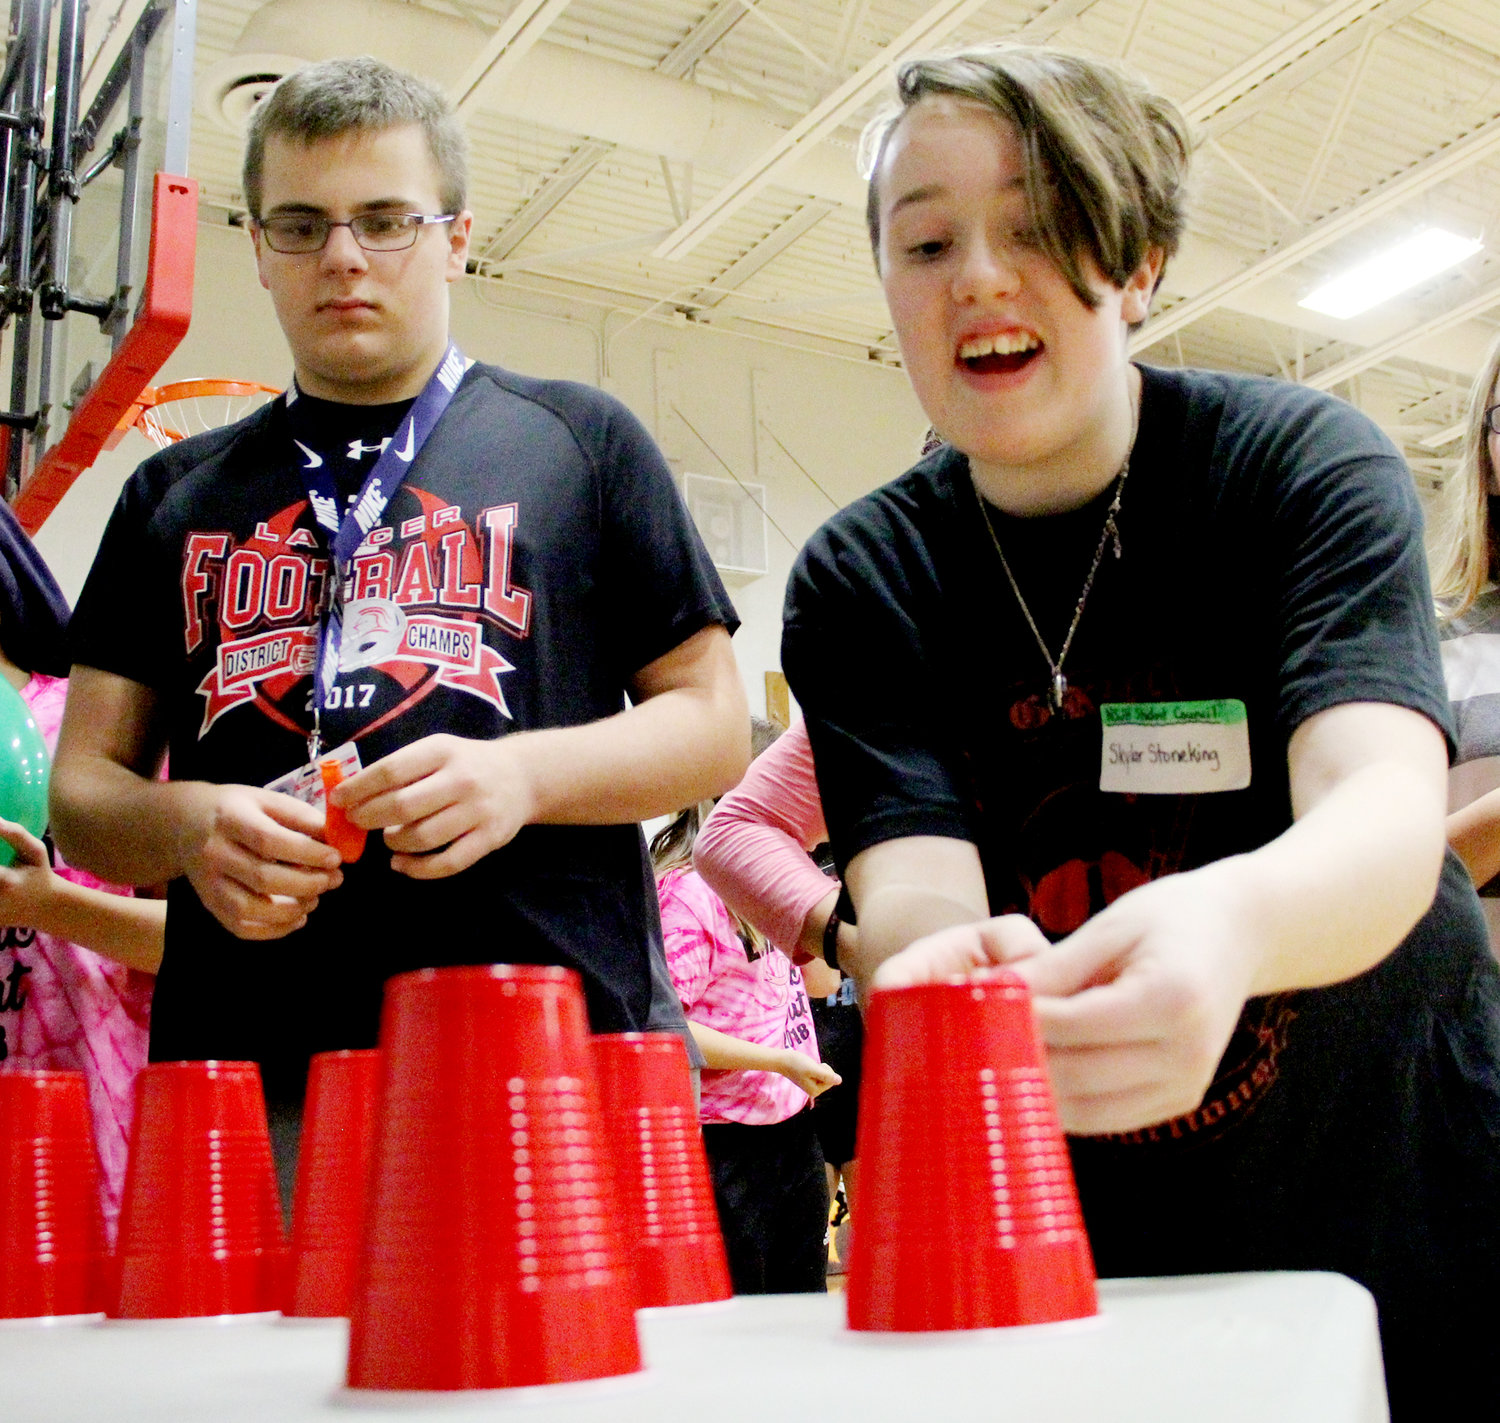 Skylar Stoneking attempts a tricky cup-stacking maneuver.